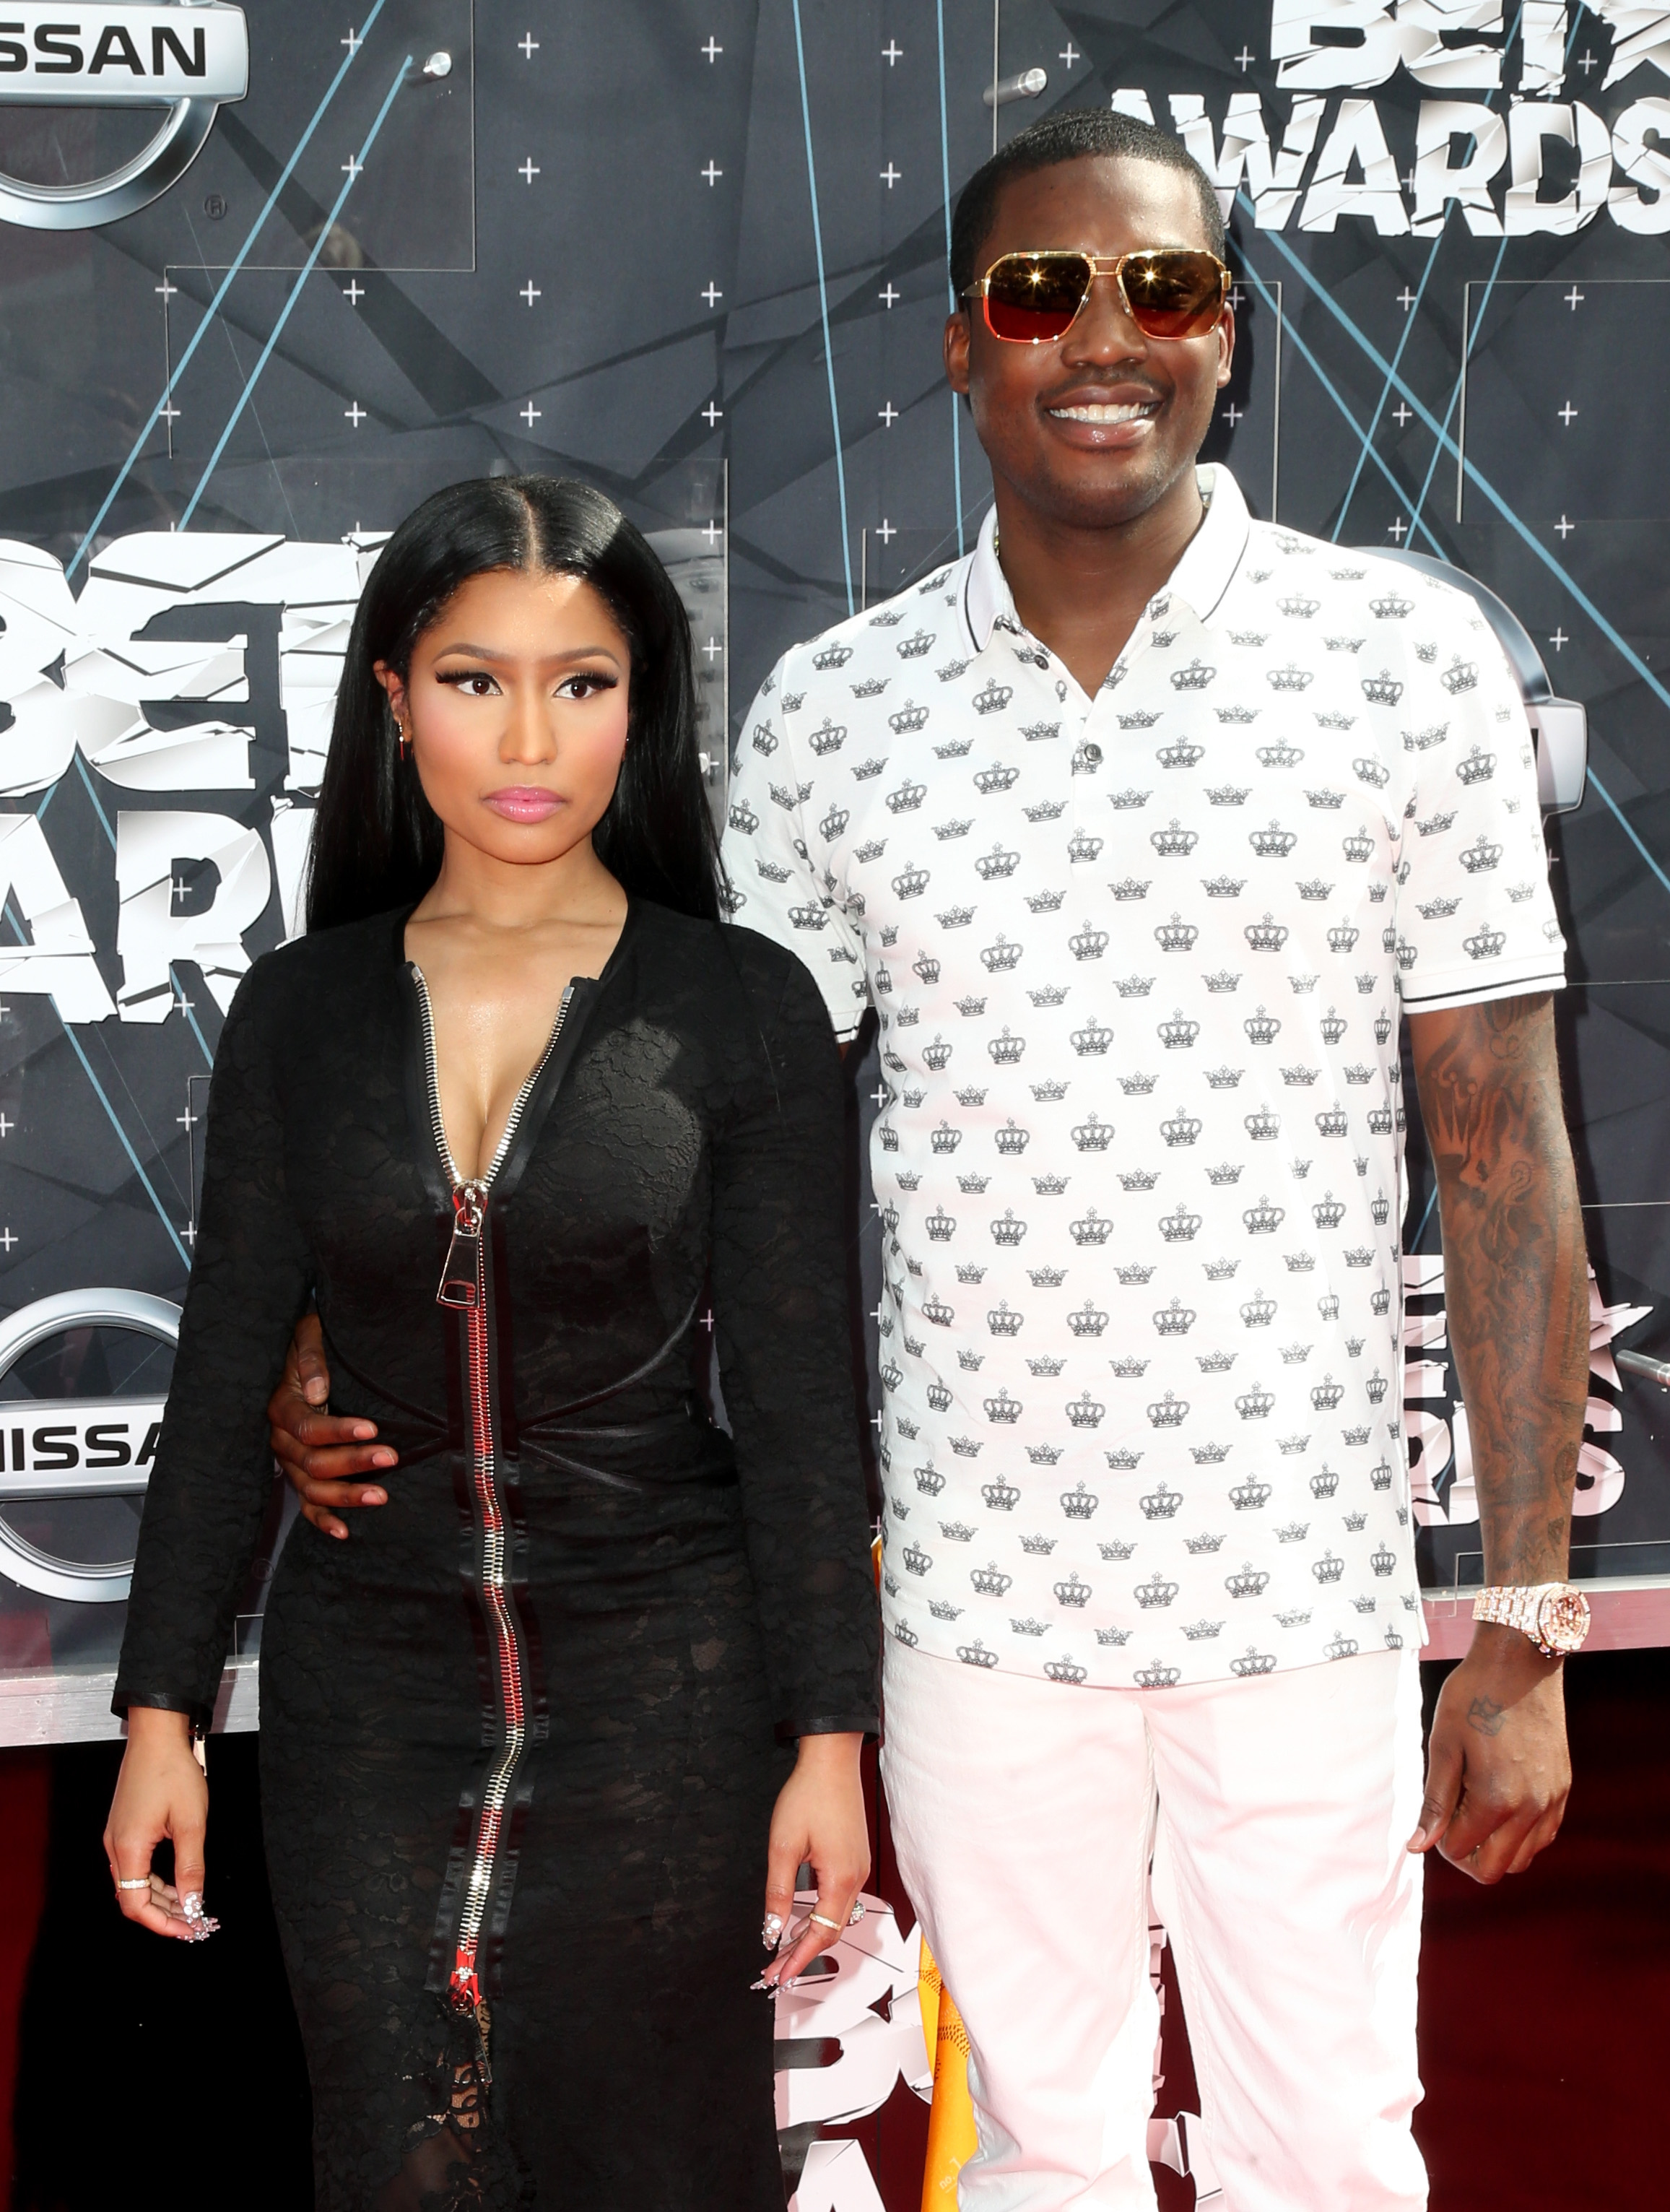 Who is nicki minaj dating now